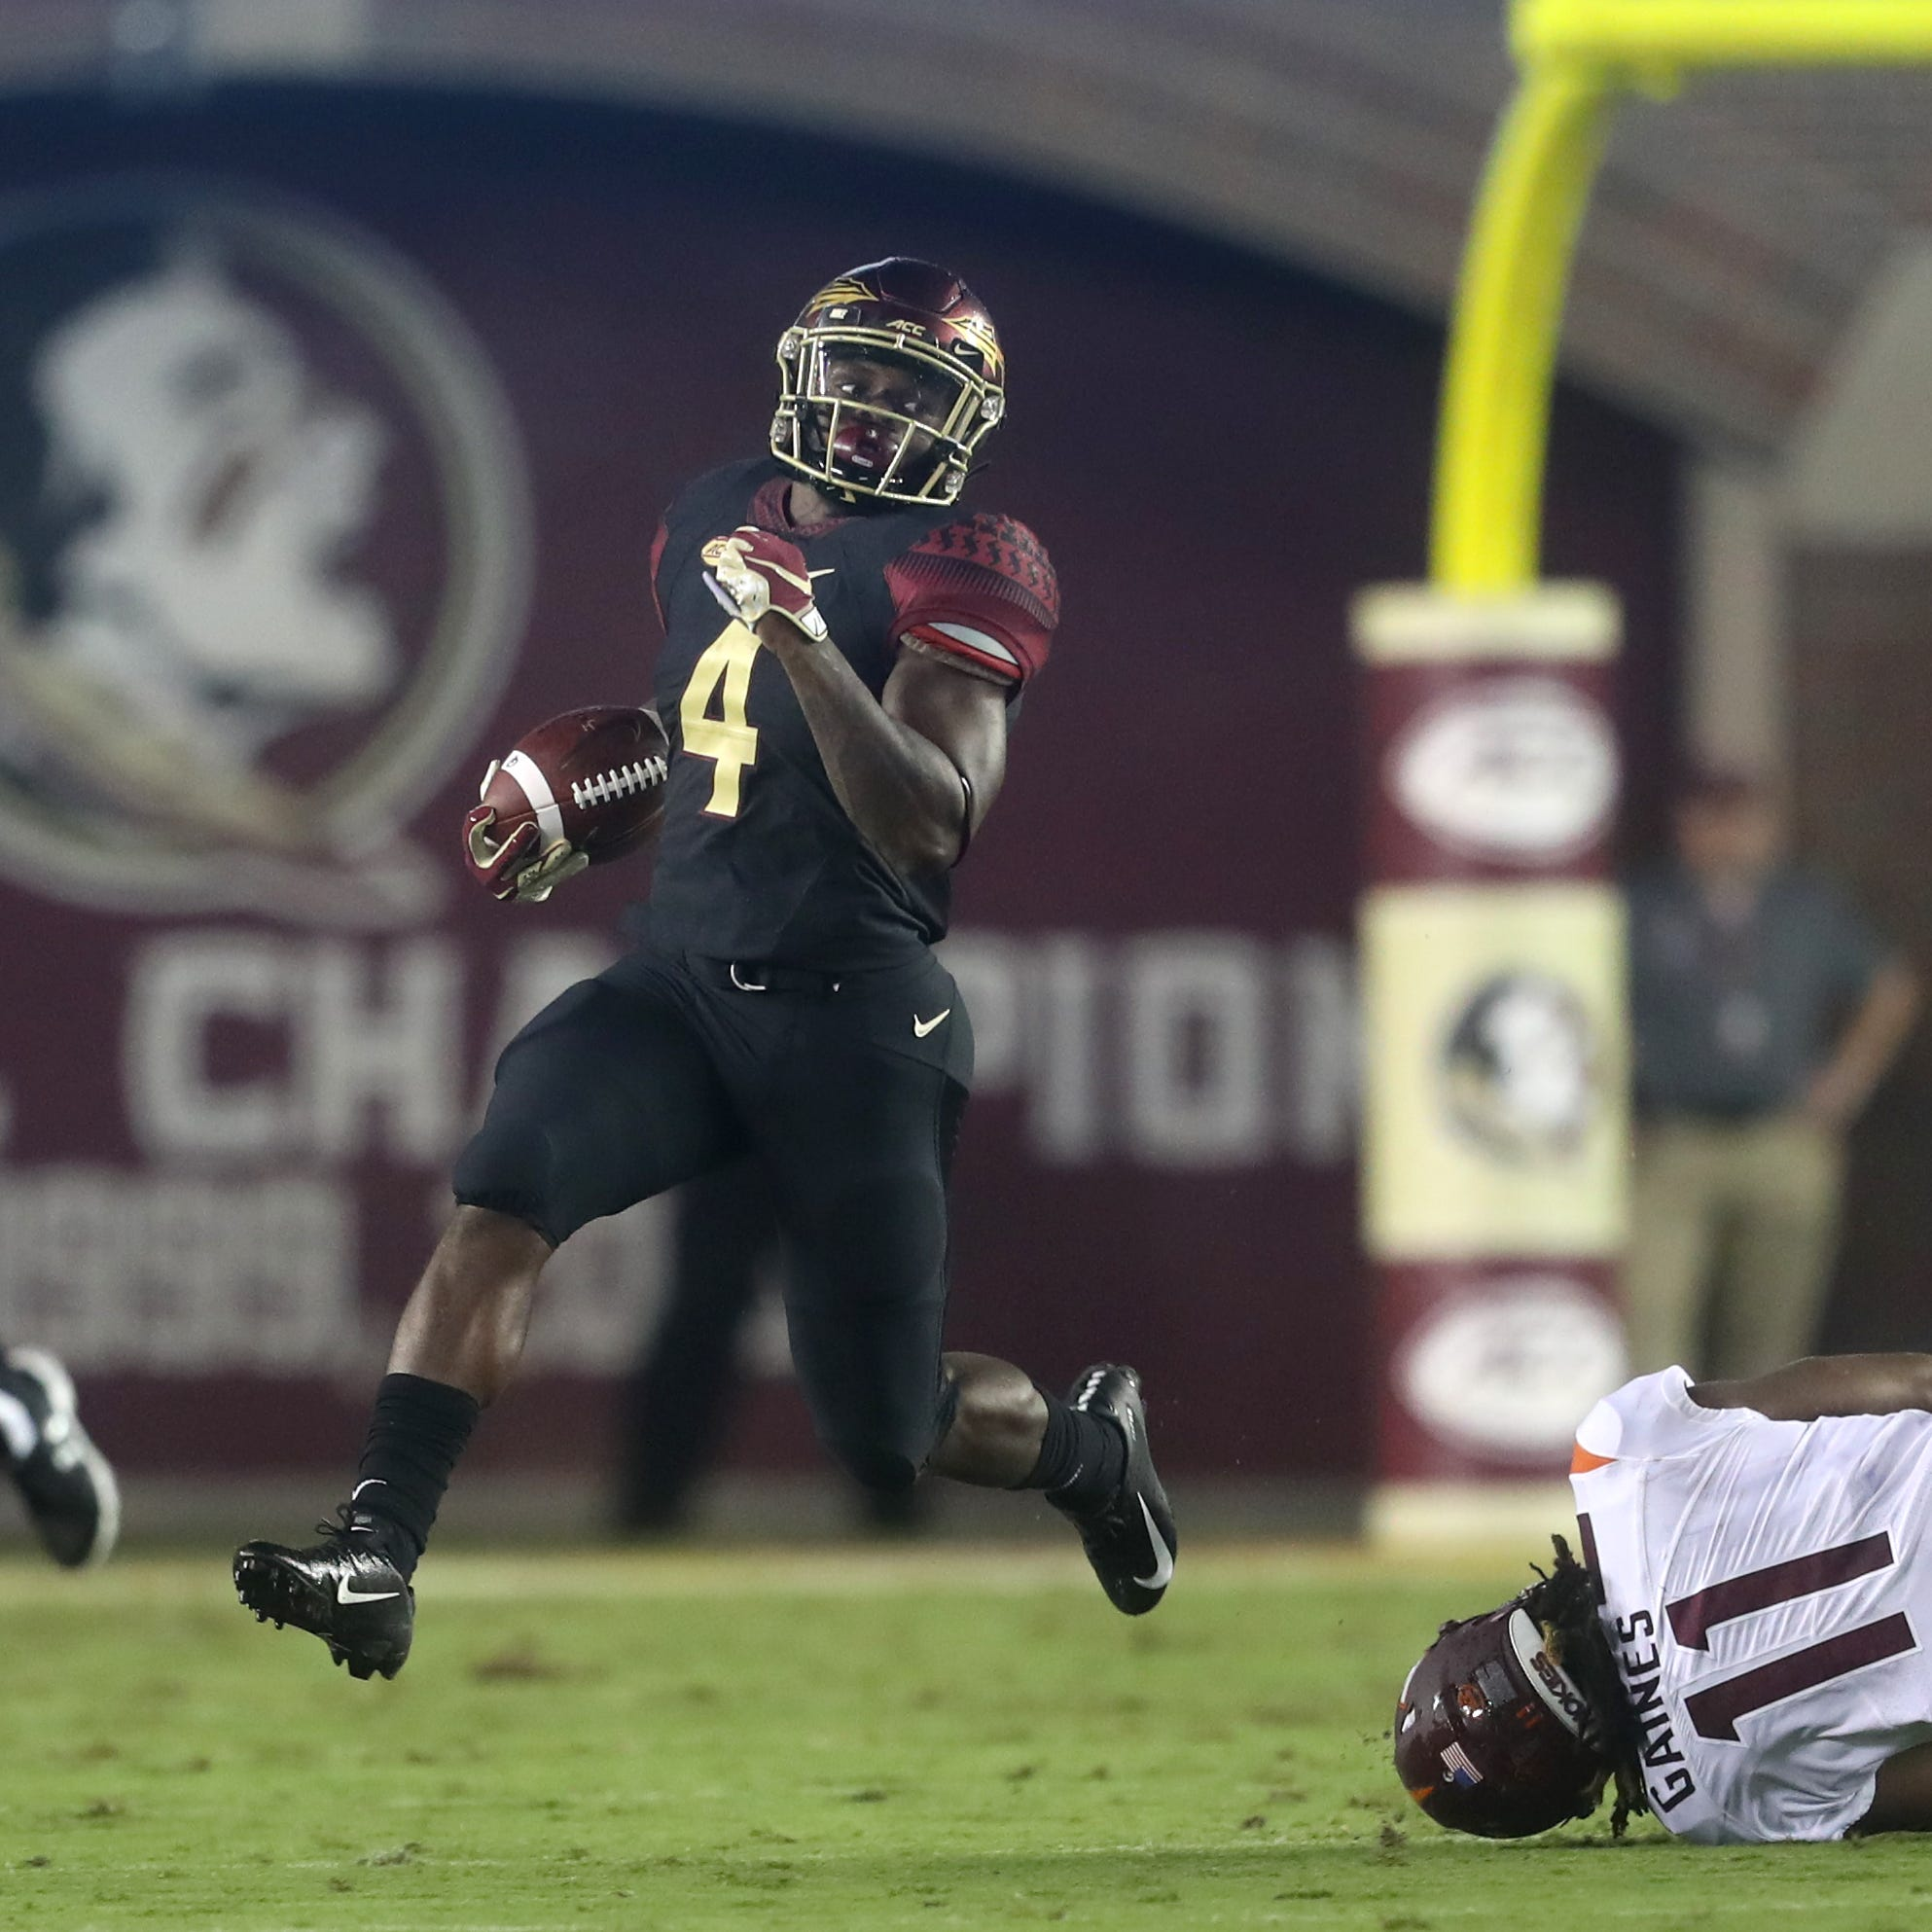 FSU running back Khalan Laborn returning to form as he finishes recovery